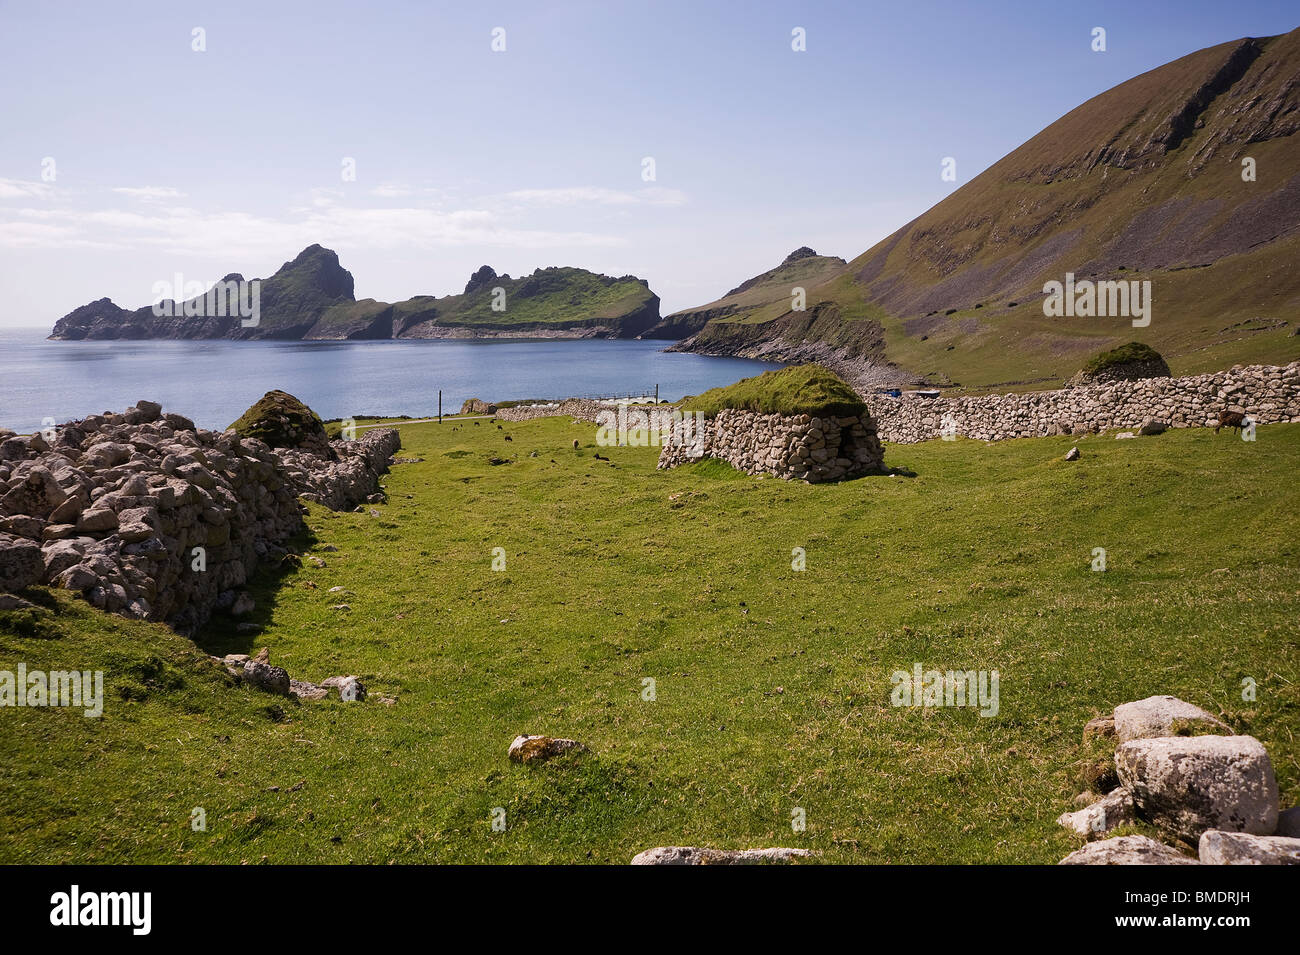 The view from one of the houses on St. Kilda, looking across the bay to Dun island - Stock Image